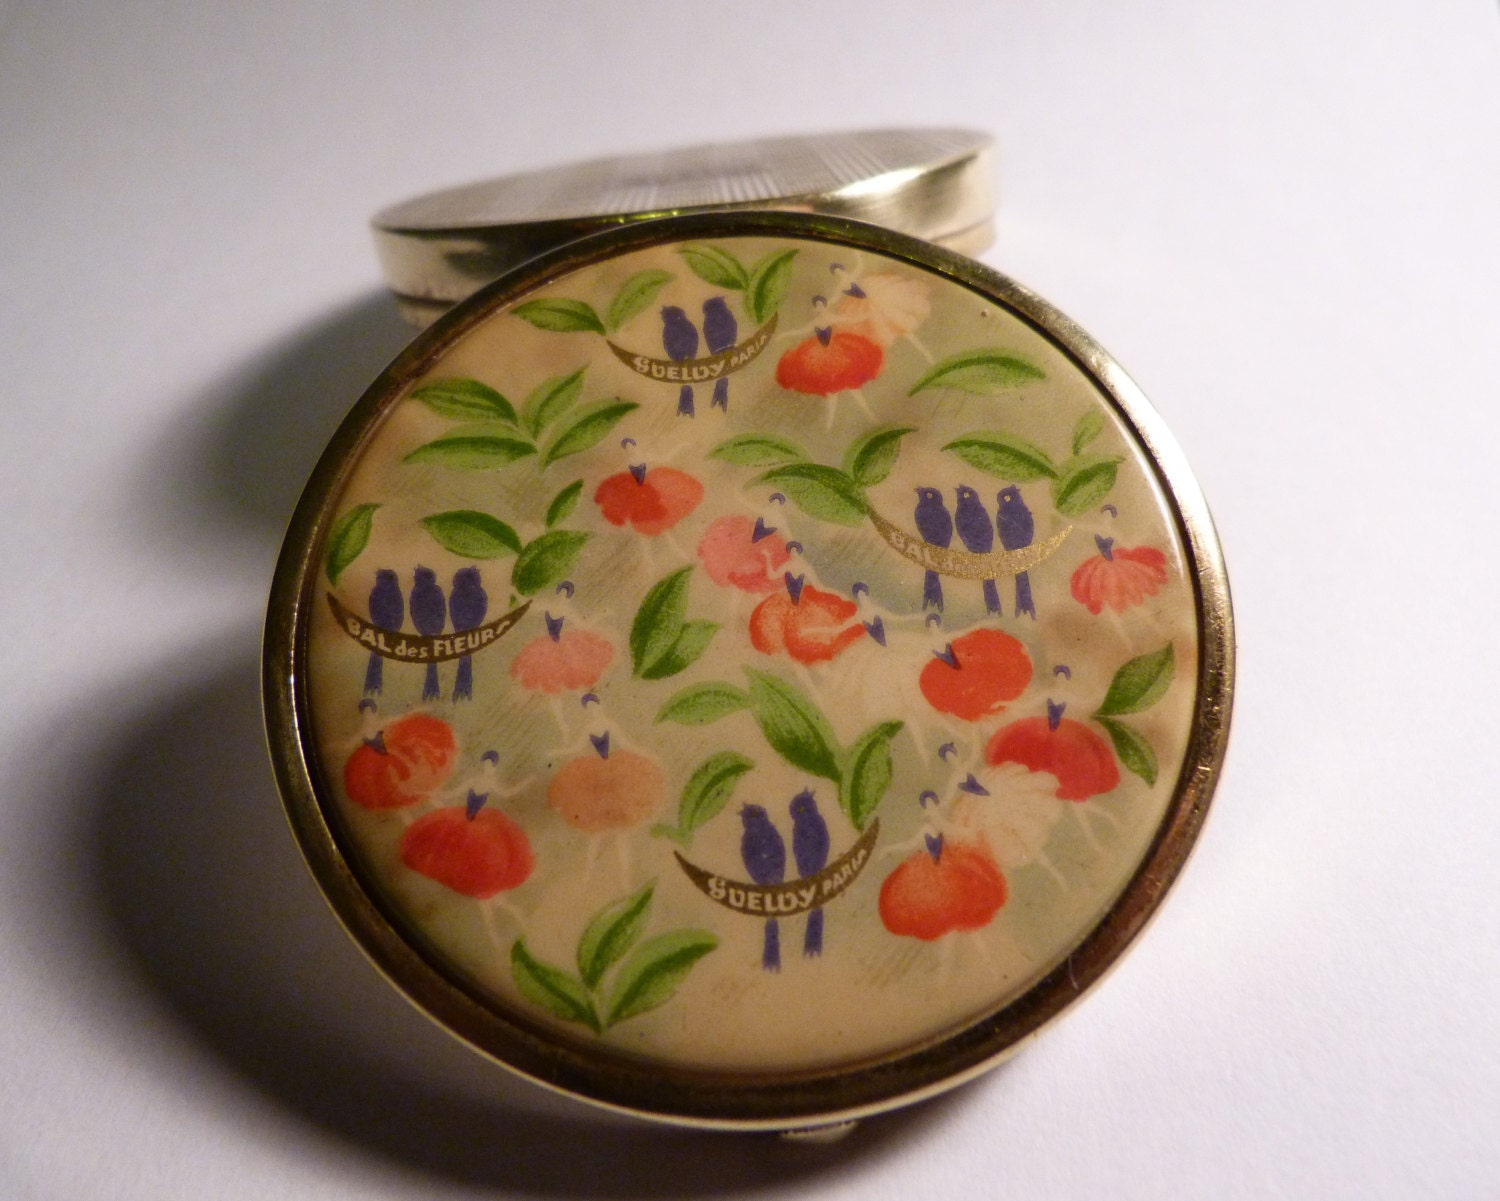 Rare antique ballerina compact GUELDY Bal des Fleurs celluloid ballet compact SOMETHING BLUE gifts very rare compact mirrors 1920s